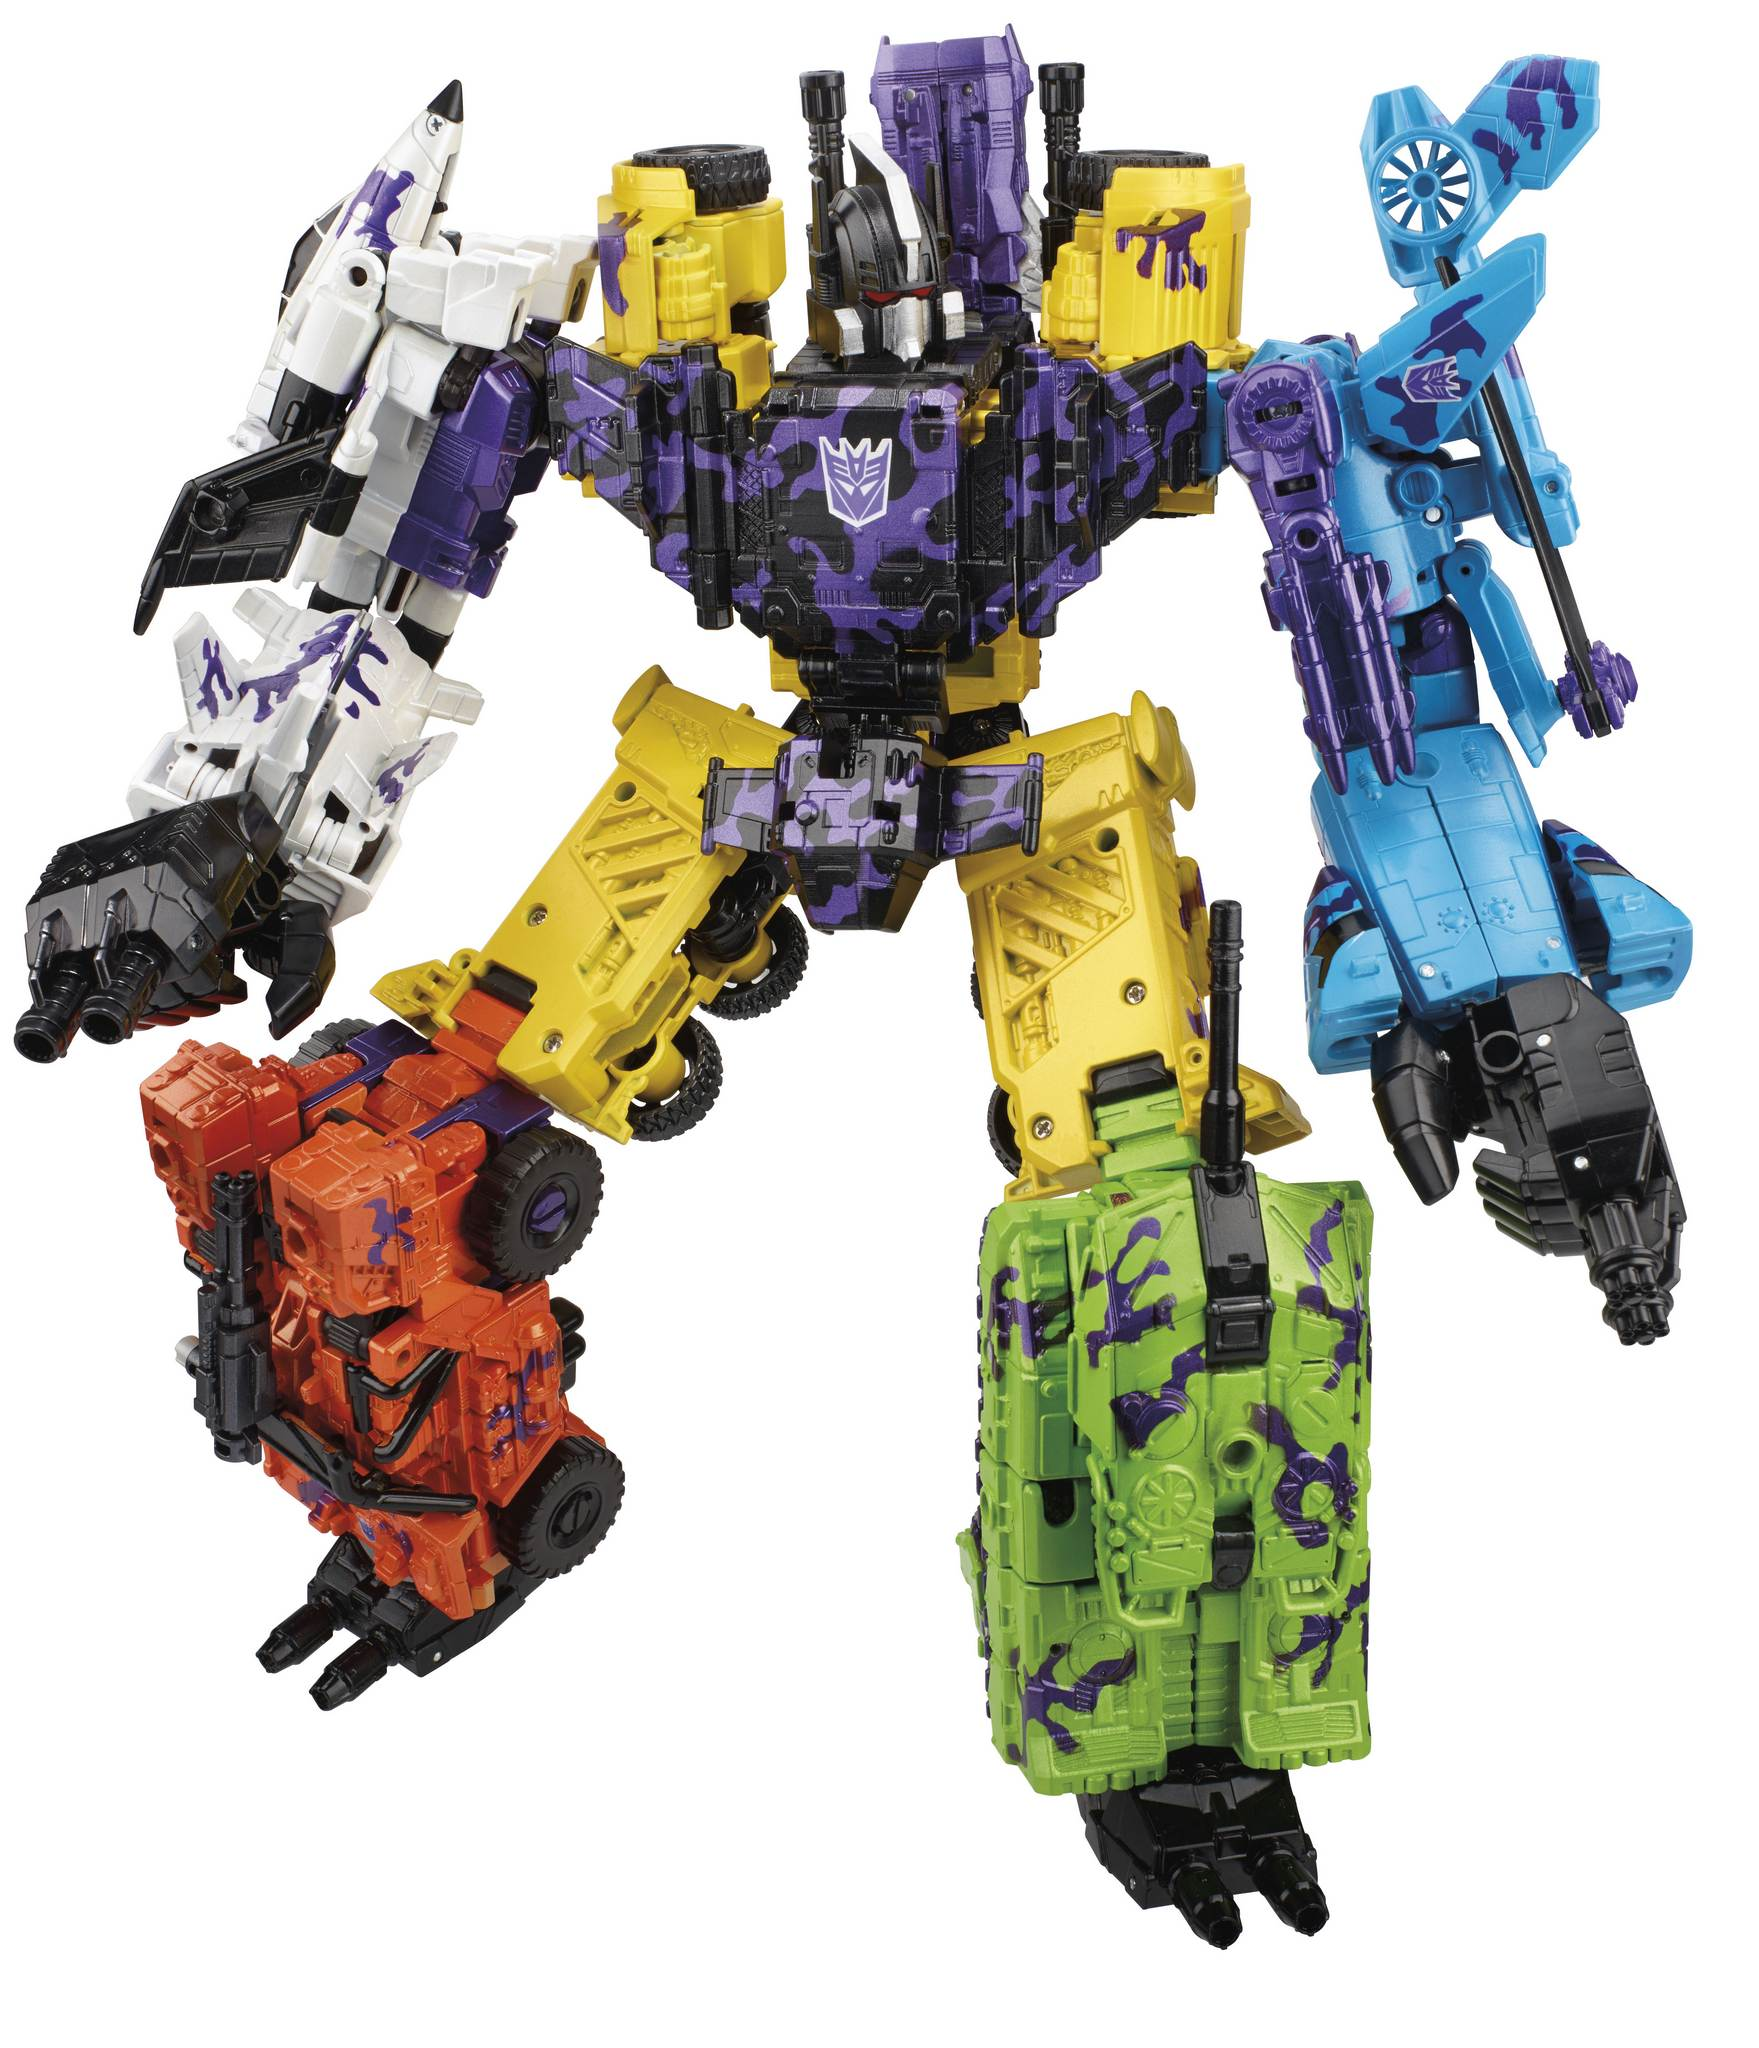 02-B3899AS00_TRA_Combiner_War_Bruticus_2